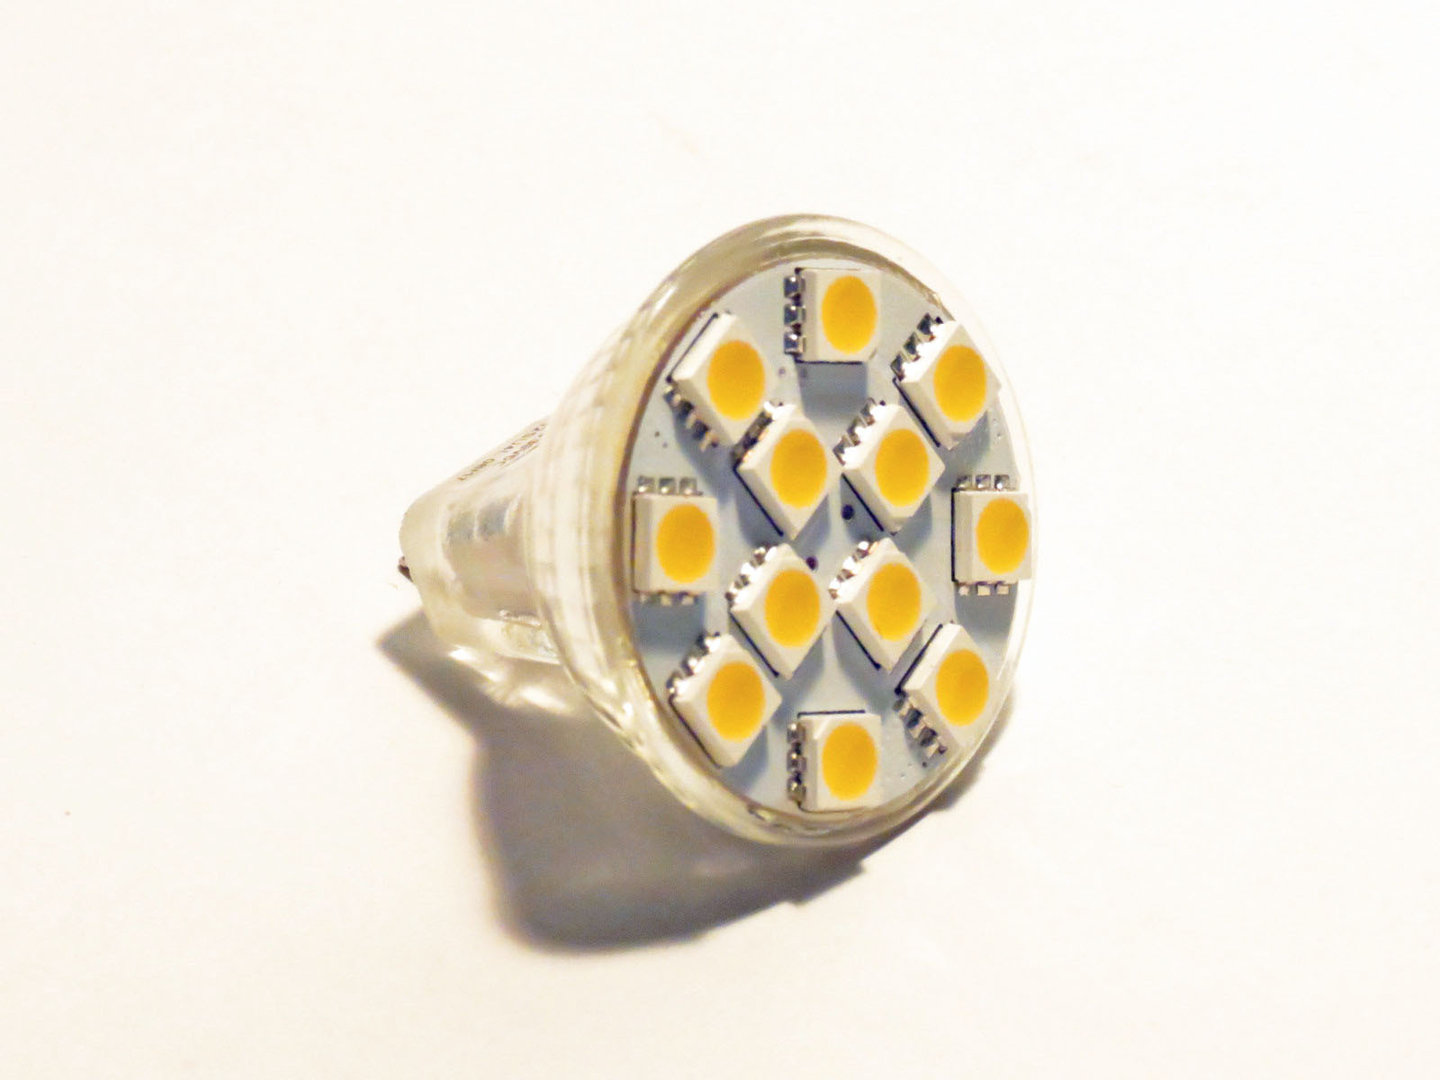 MR11 12 LED SMD 50/50 10-30V warmweiß